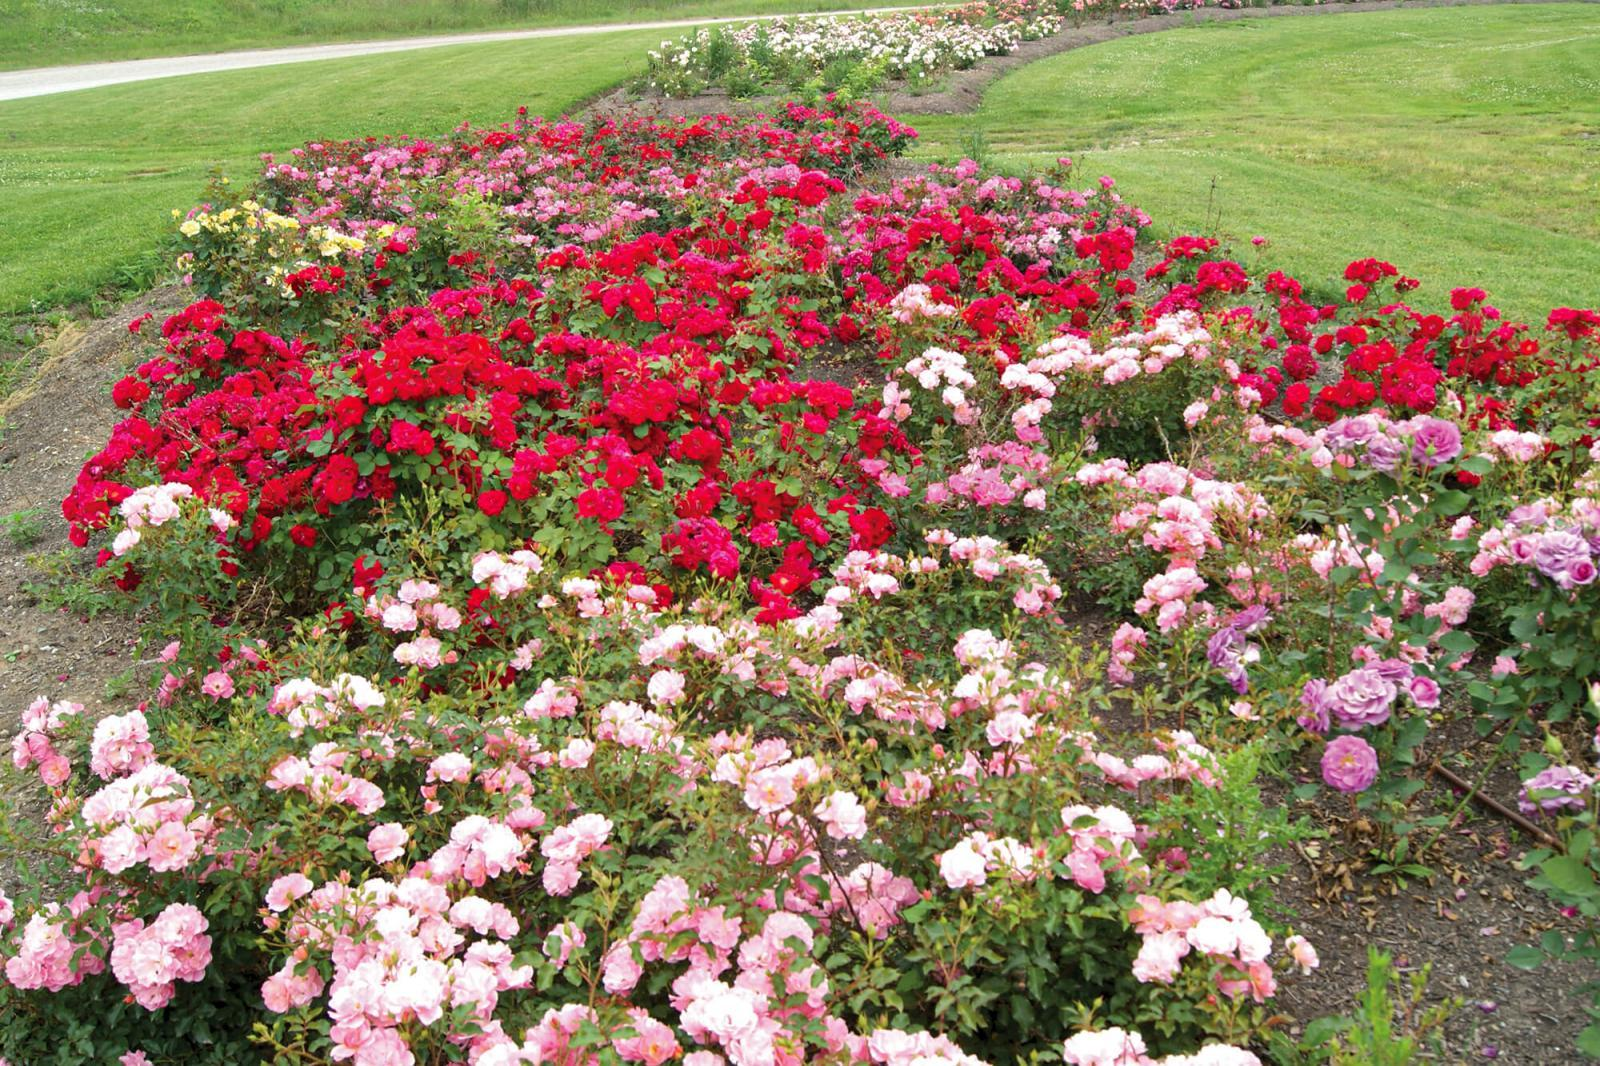 Rose trial reveals good prospects for the Ontario landscape industry